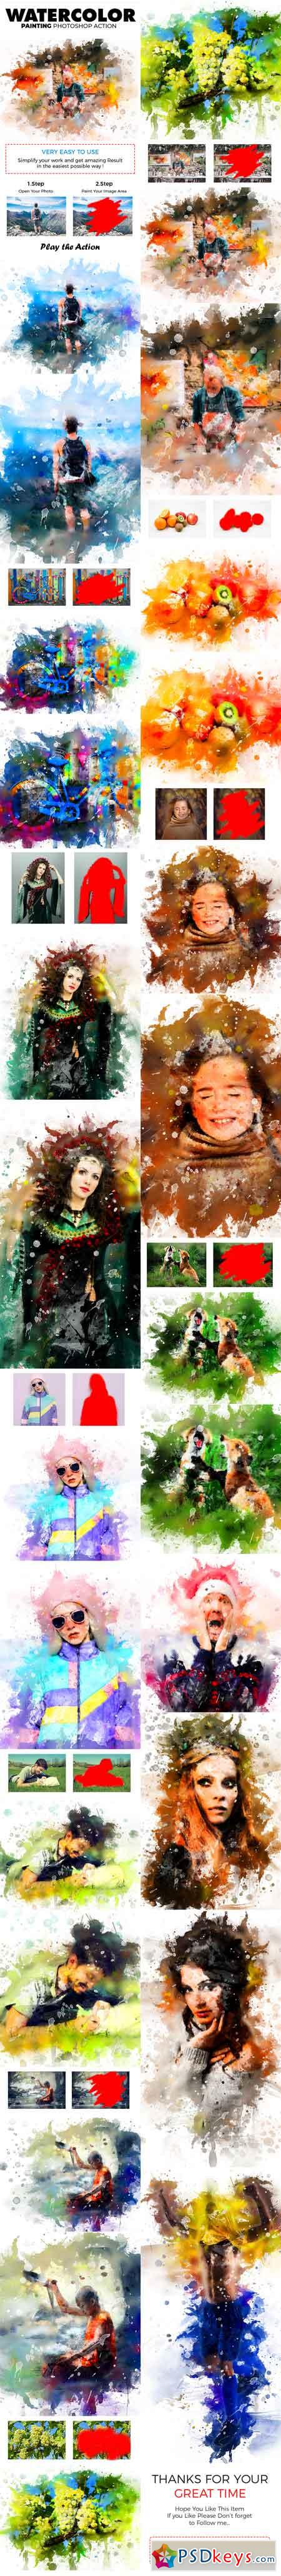 Watercolor Painting Photoshop Action 21875063